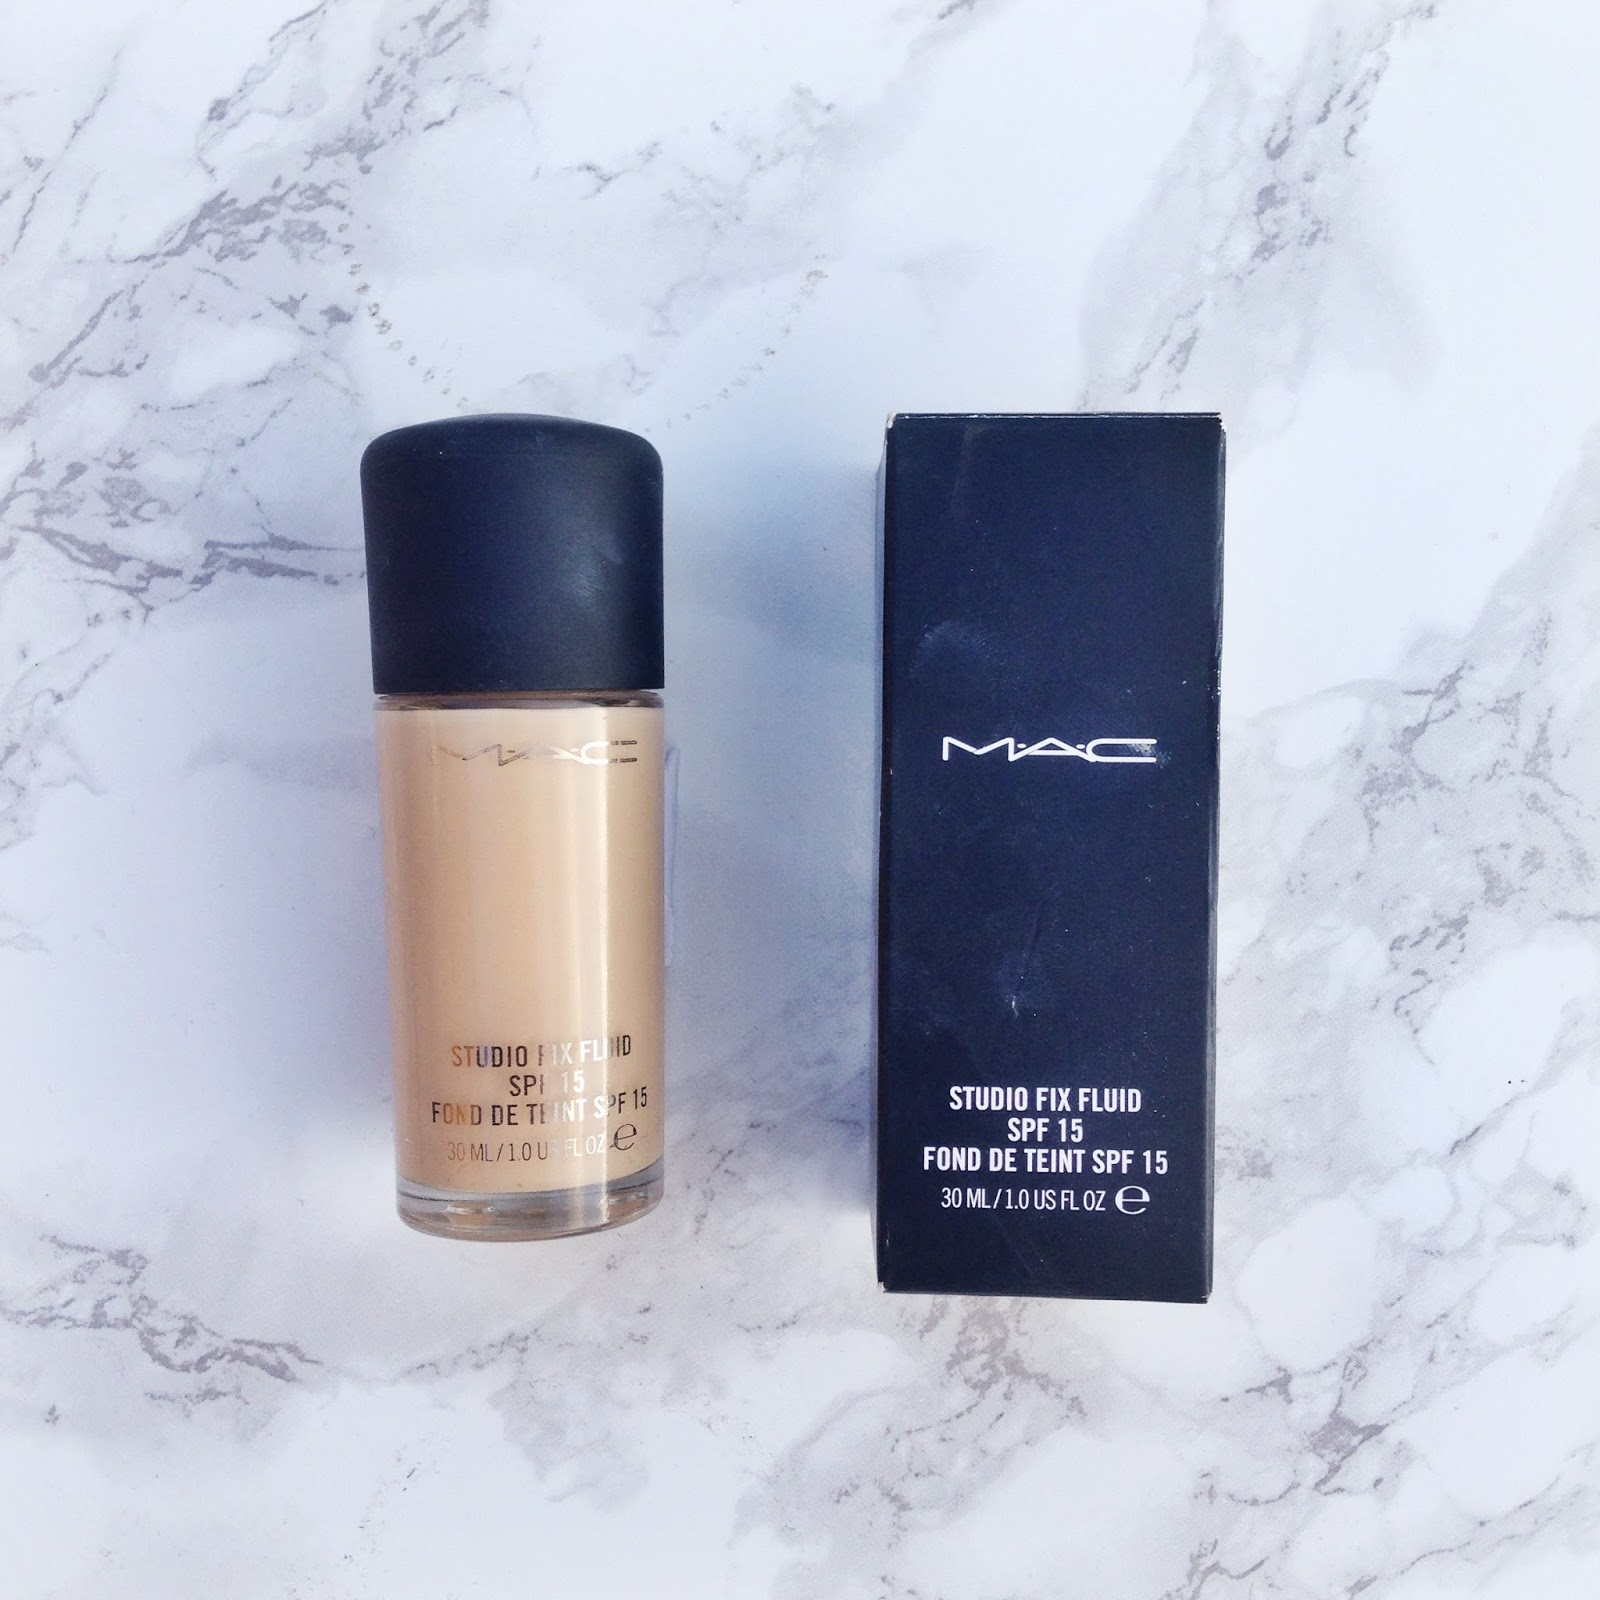 3 Oily Skin Foundation Reviews - High End & High Street - Pale Aesthetic